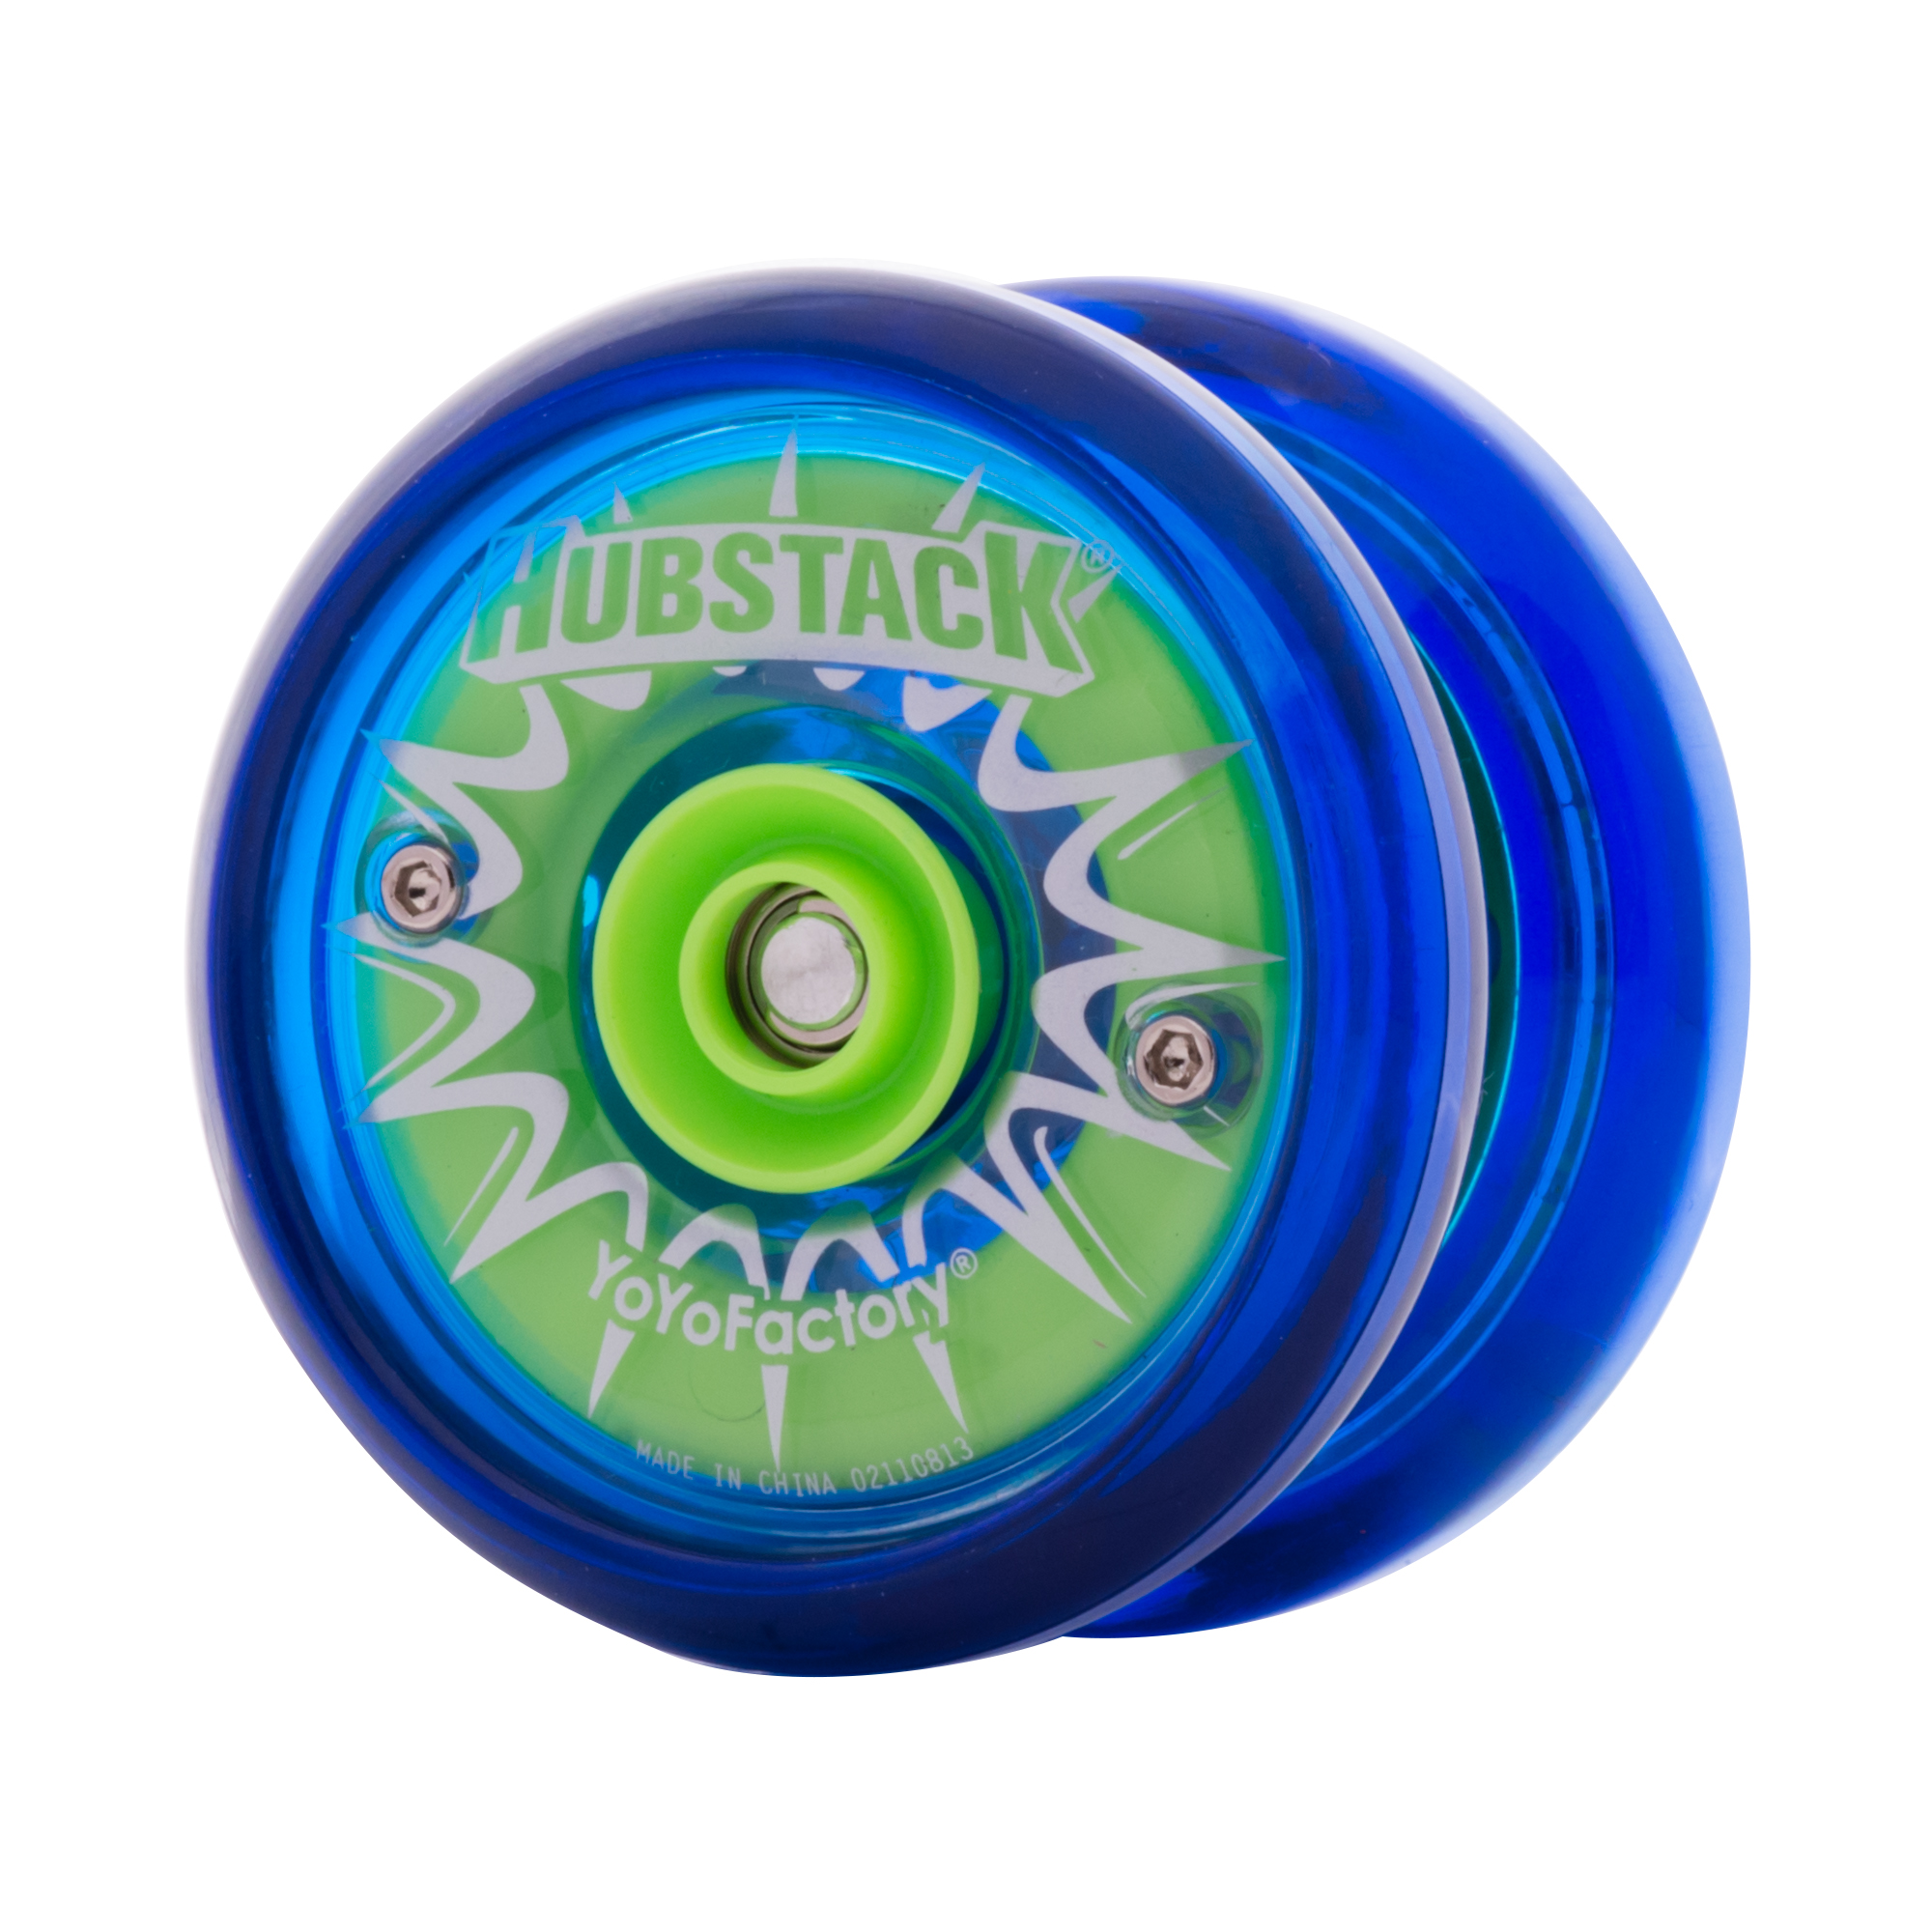 Hubstack-BlueGreen-HighRes.jpg